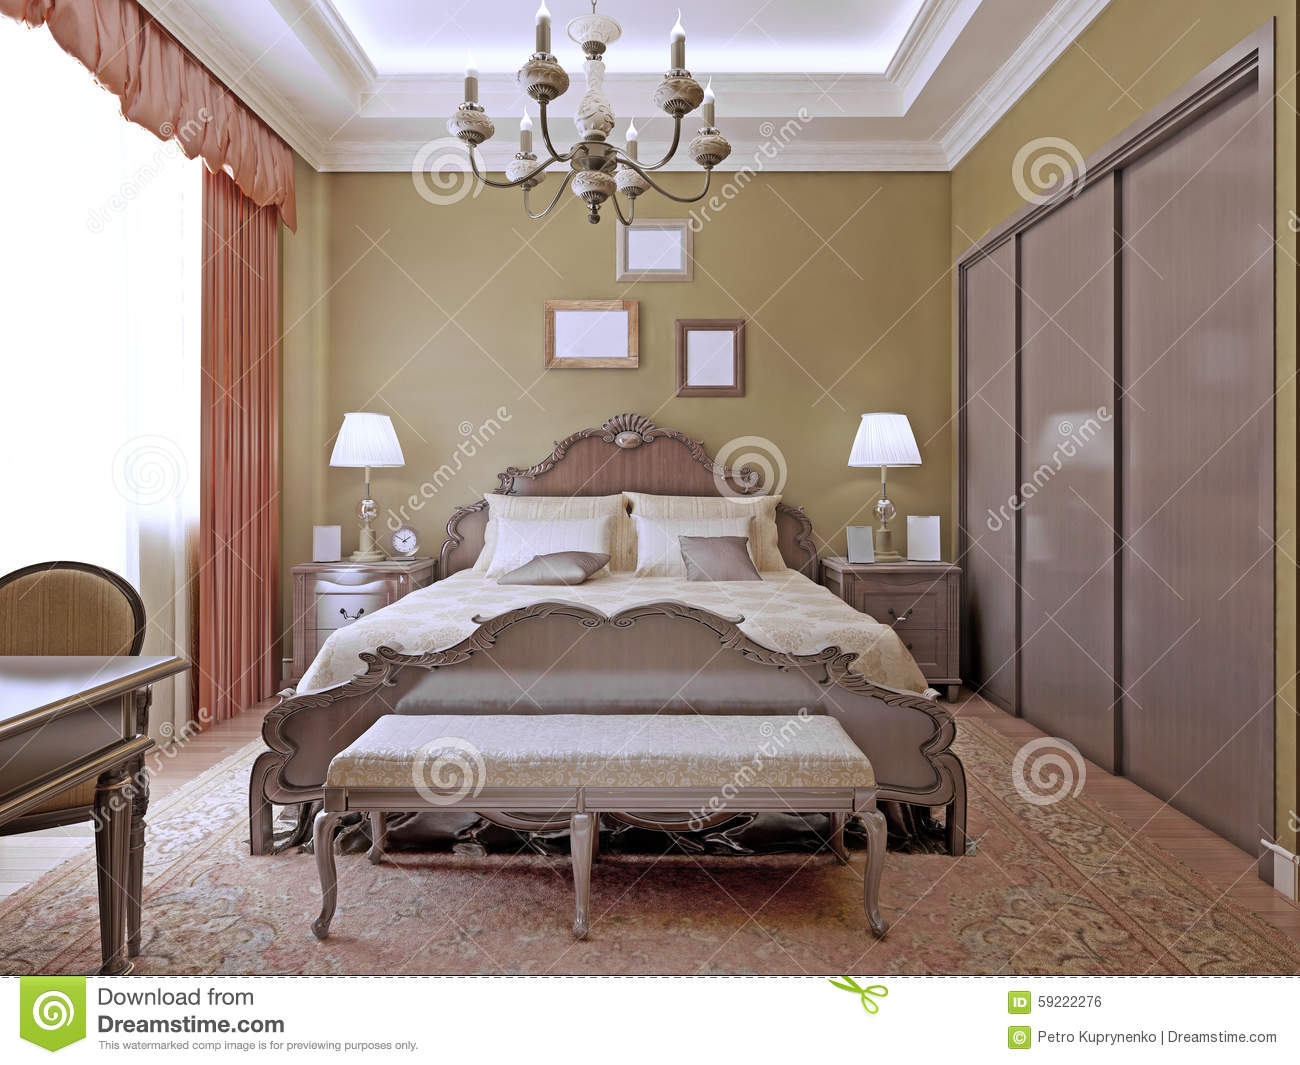 Art deco bedroom with ceiling neon lights stock photo for Chambre a coucher deco